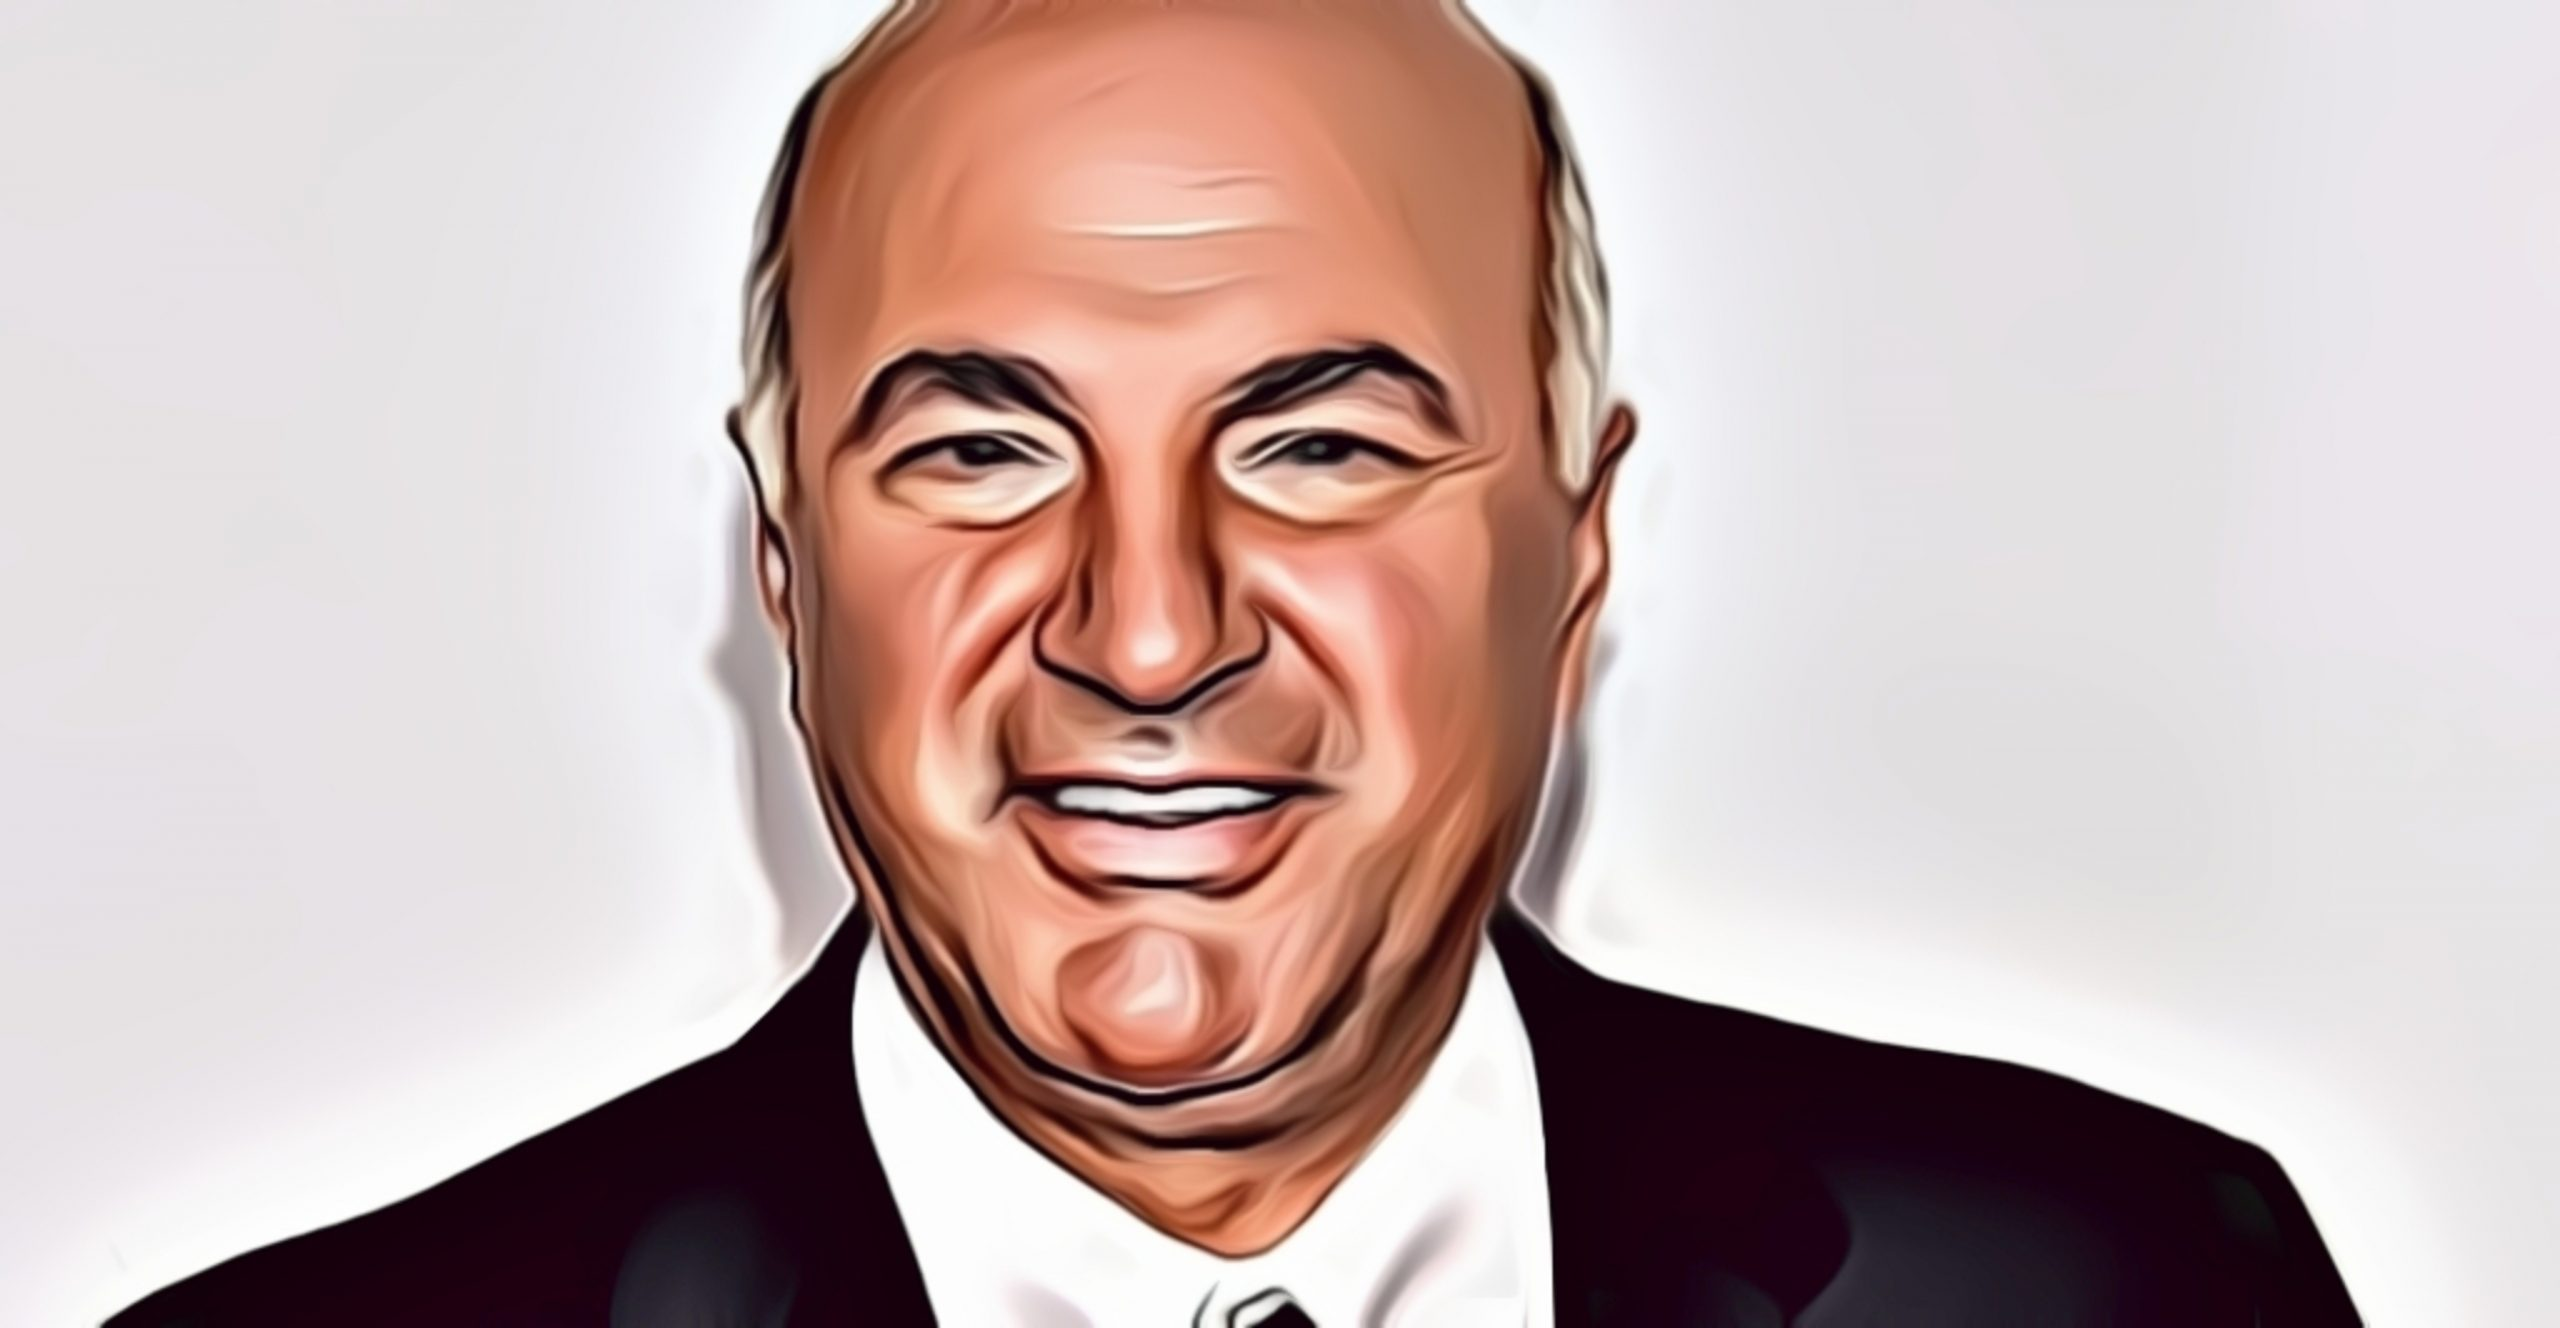 kevin-o-leary-net-worth